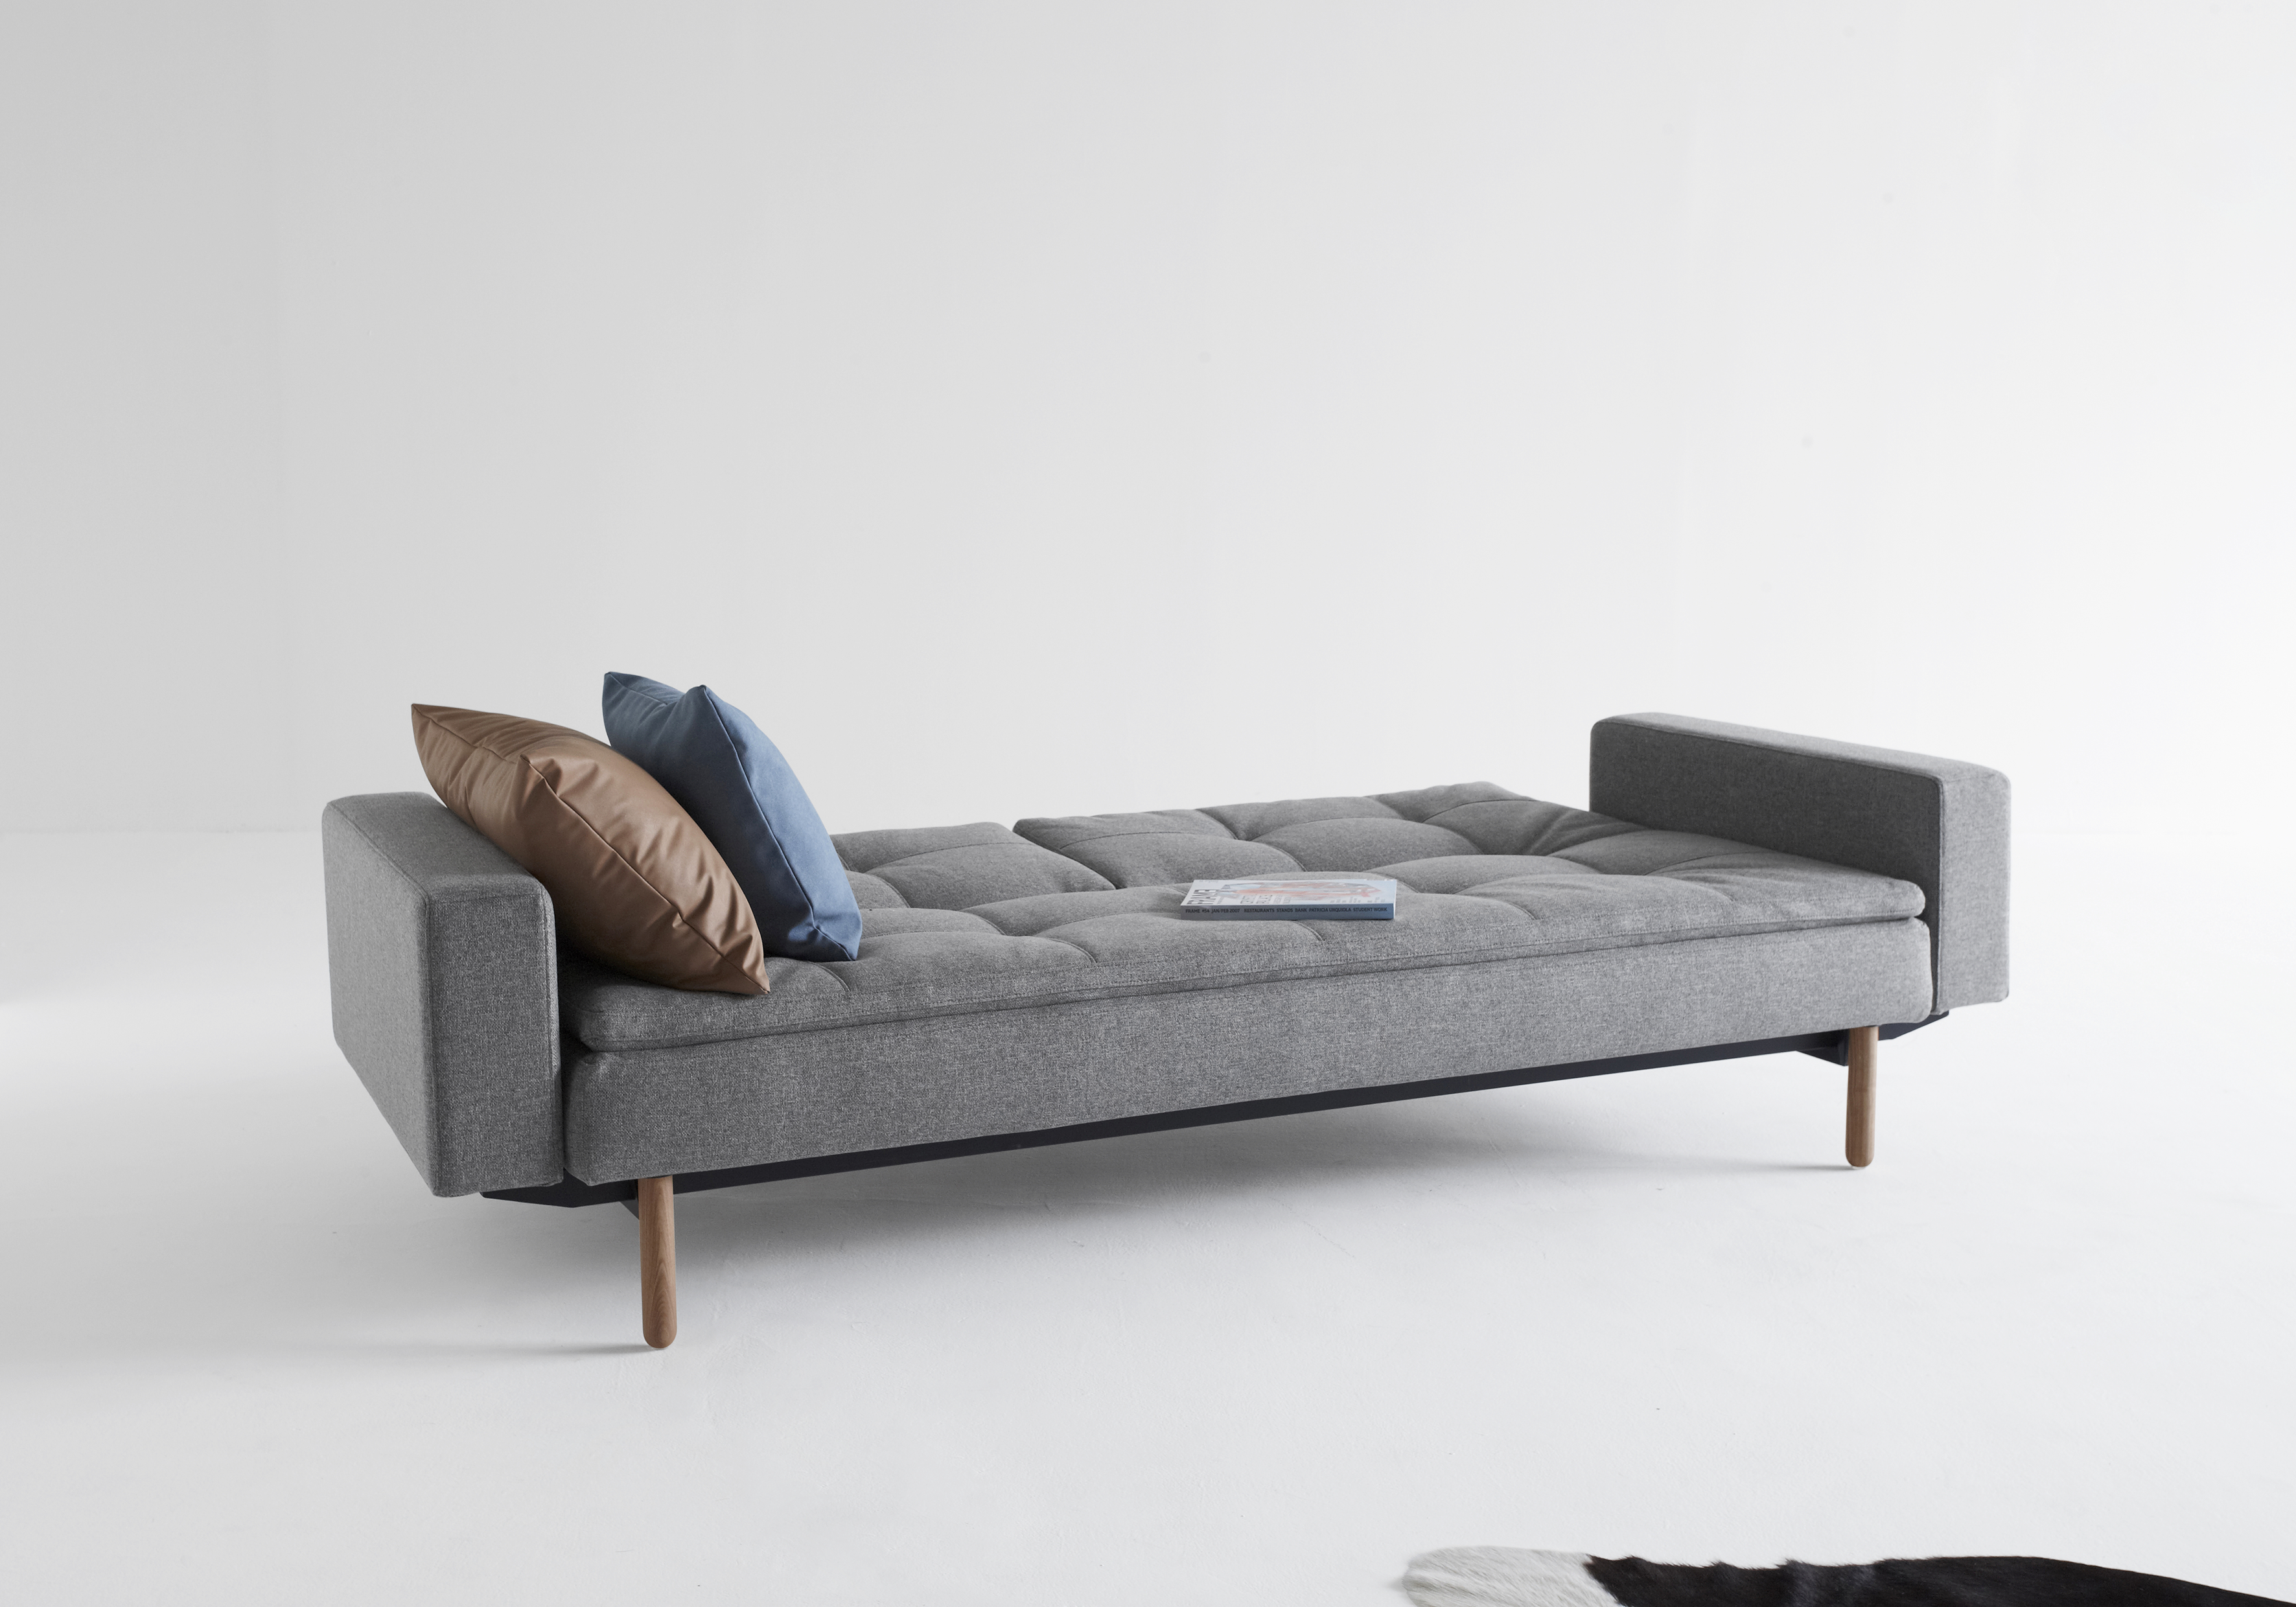 ISTYLE_2015_-_DUBLEXO_SOFA_BED_WITH_ARMRESTS_STEM_LIGHT_WOOD_-_563_TWIST_CHARCOAL_-_BED_POSITION